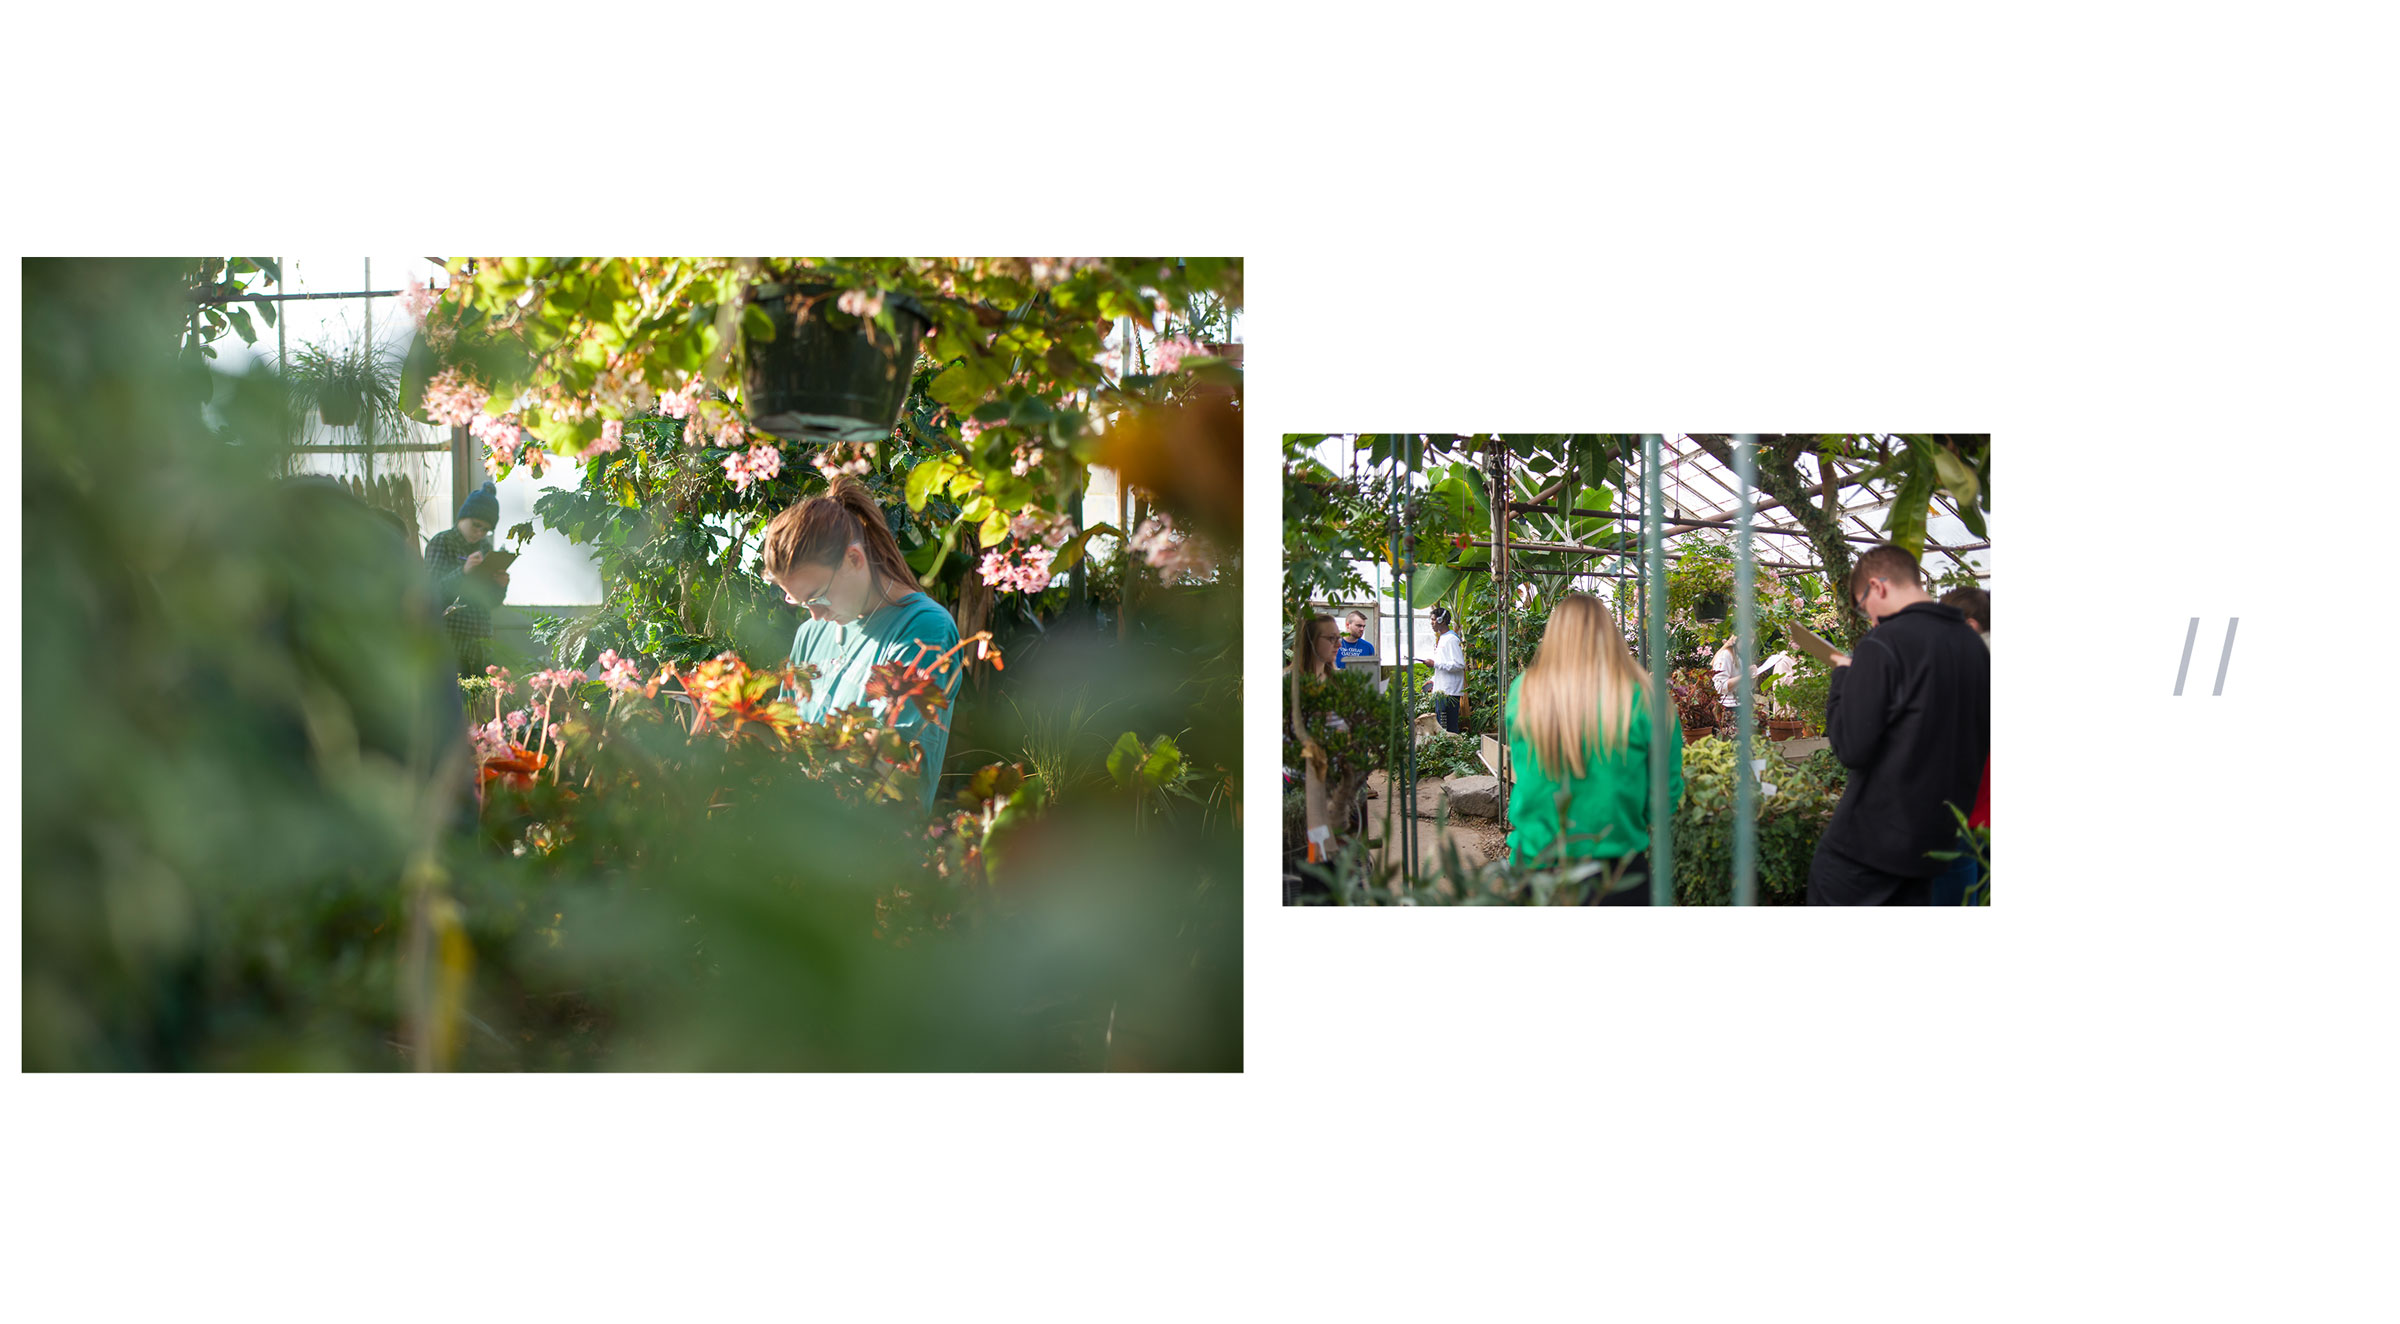 Loren-Marple_Photography_UNH-Bio-Class-Greenhouse_gallery.jpg